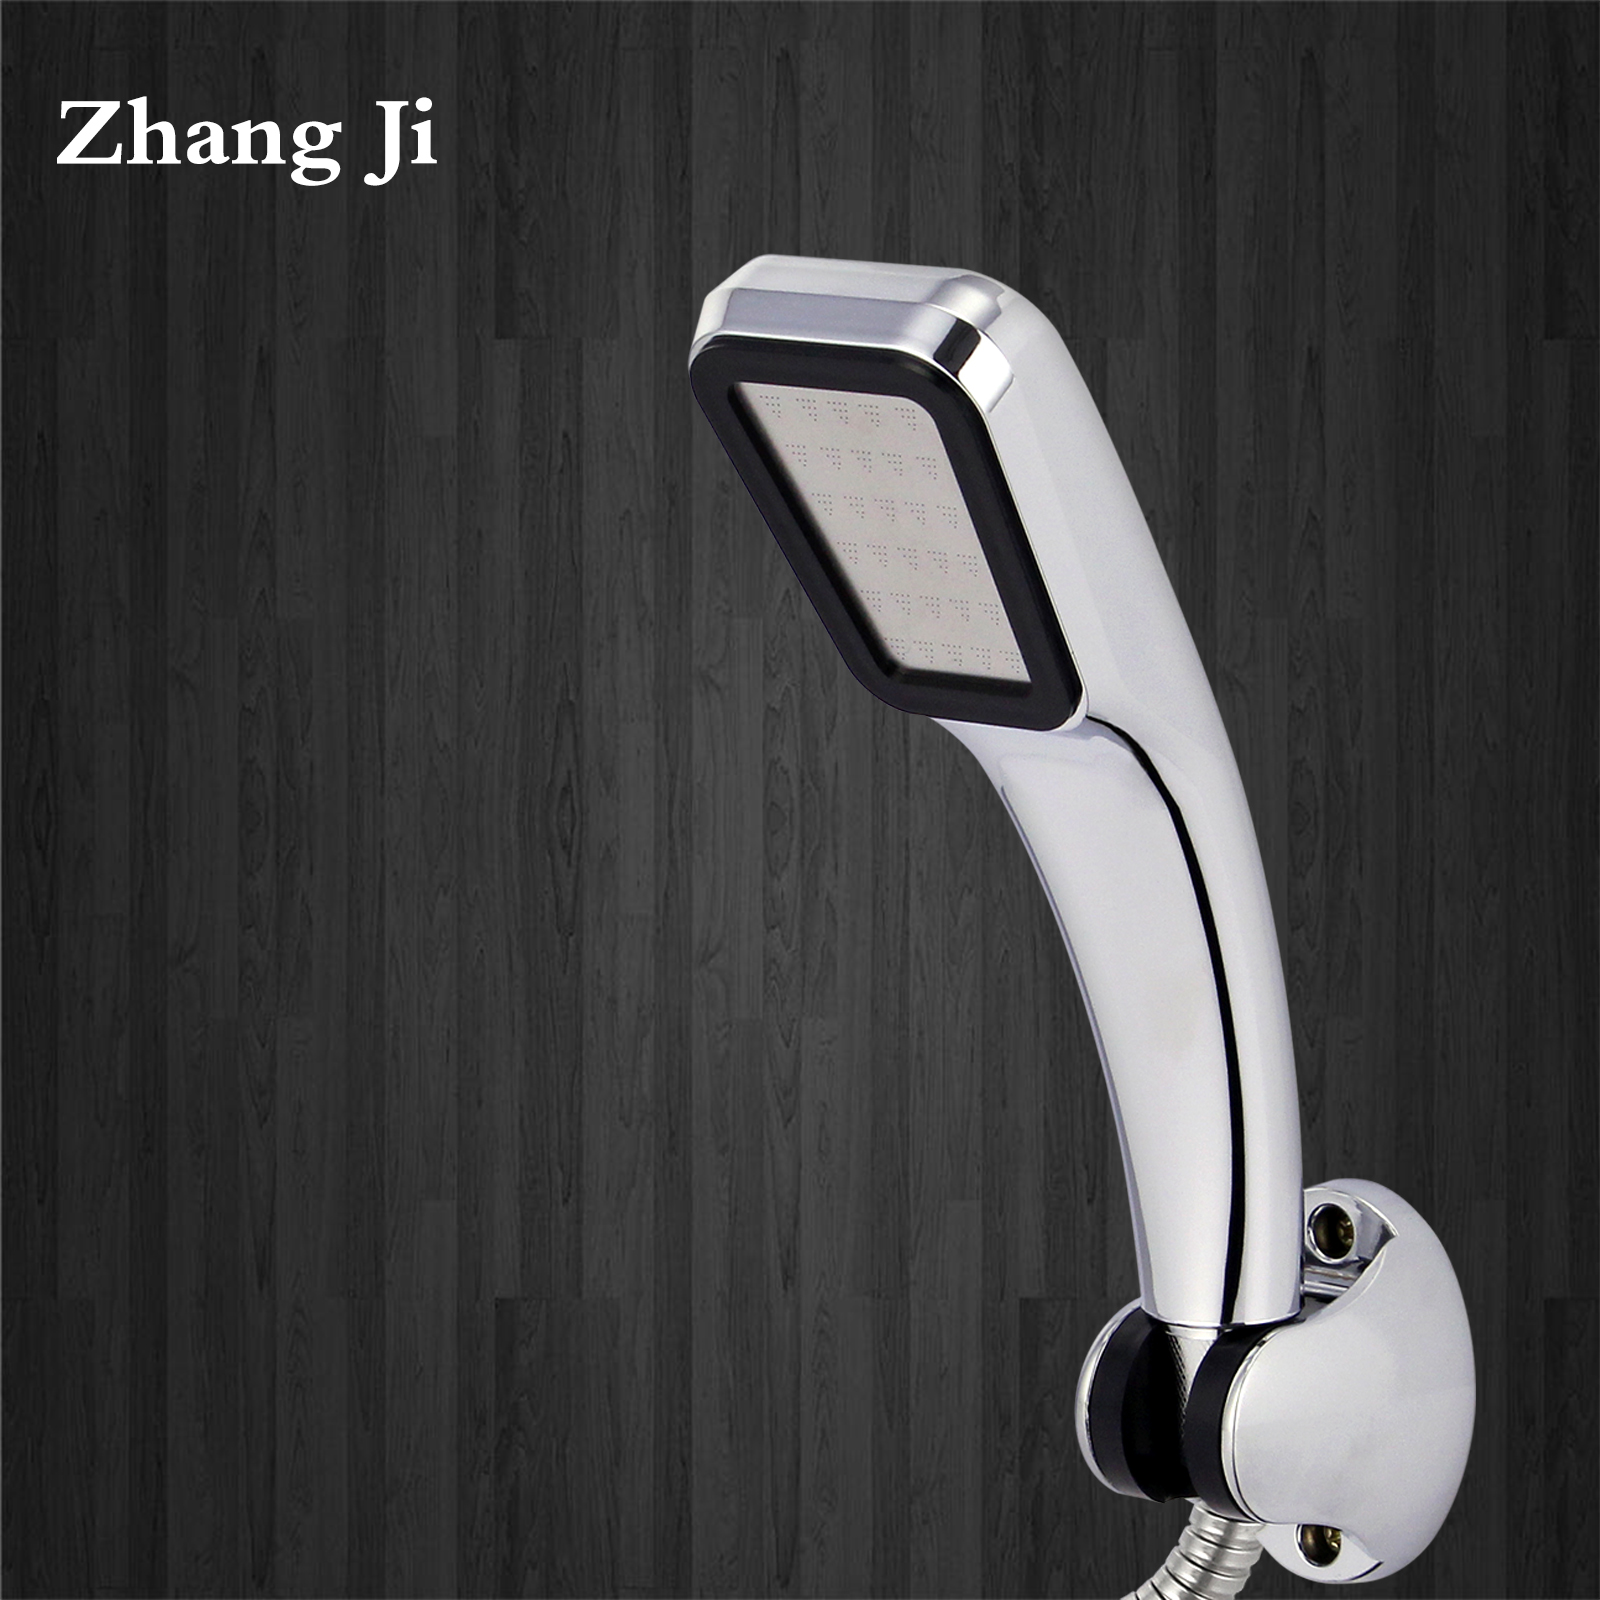 ZhangJi Hot Sale 300 Holes Shower Head Water Saving Flow With Chrome ABS Rain High Pressure Spray Nozzle Bathroom Accessories